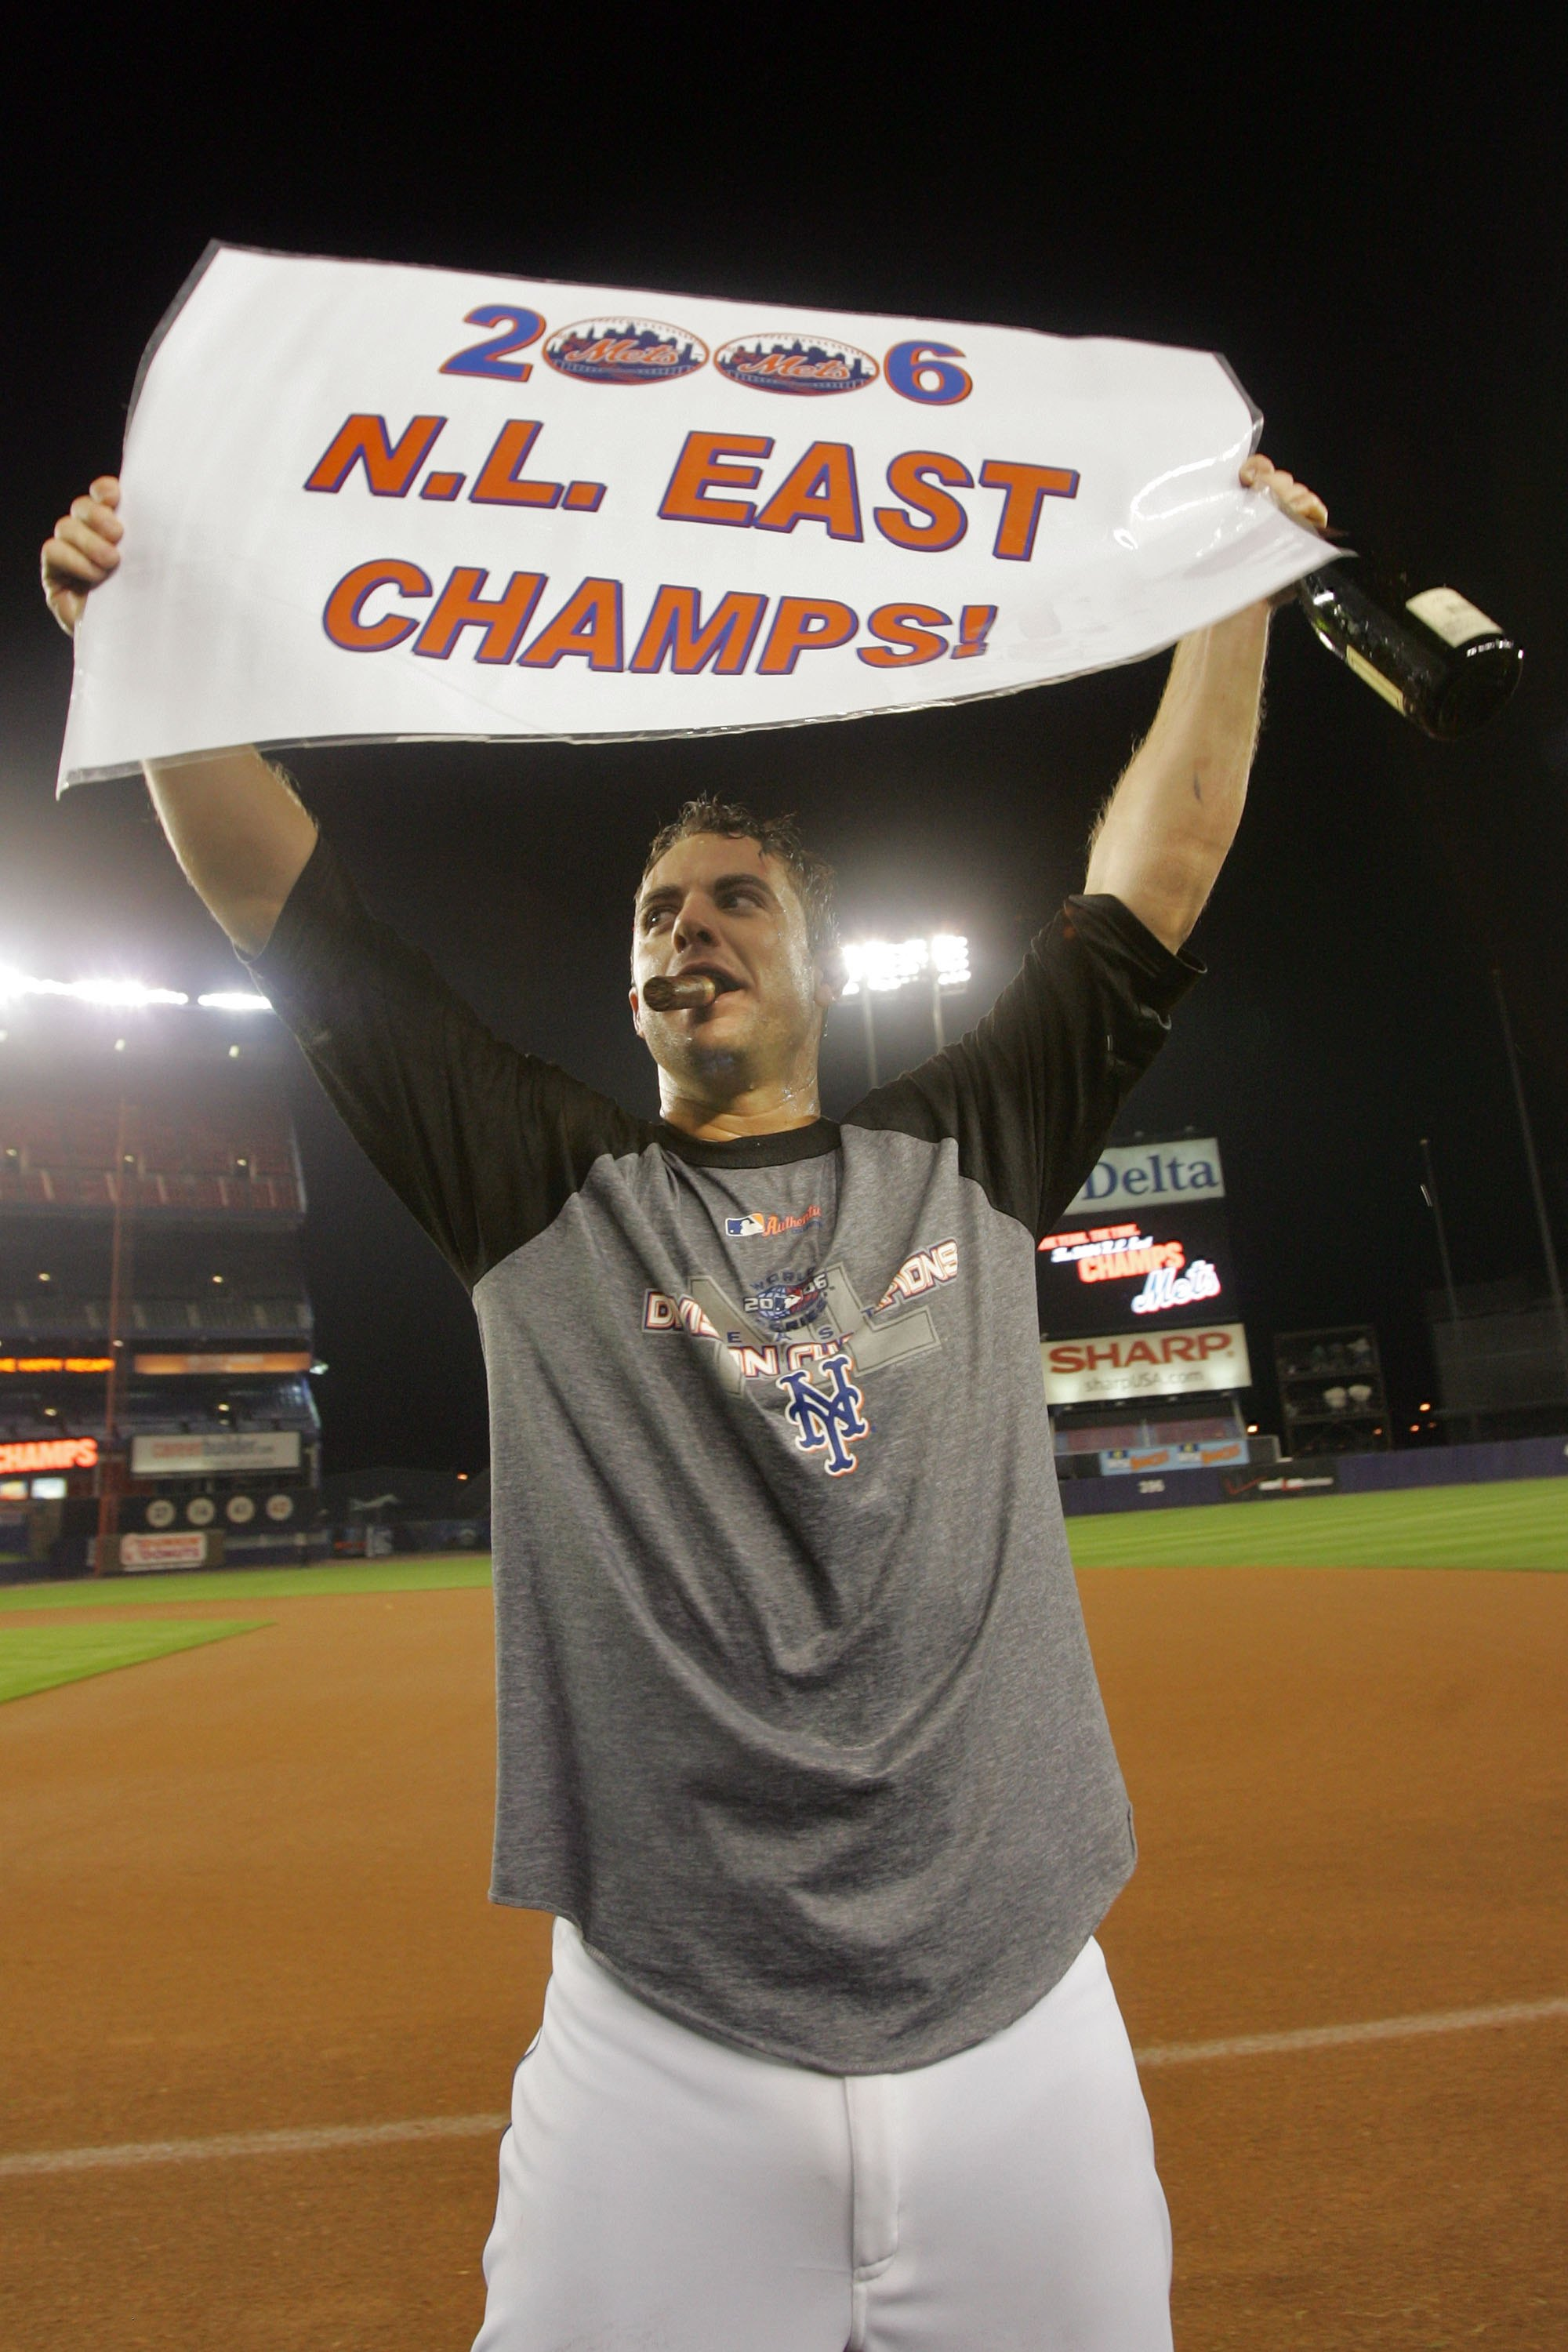 NEW YORK - SEPTEMBER 18:  David Wright #5 of the New York Mets holds up a sign reading '2006 N.L. East Champs' after beating the Florida Marlins on September 18, 2006 at Shea Stadium in the Flushing neighborhood of the Queens borough of New York City.  Wi